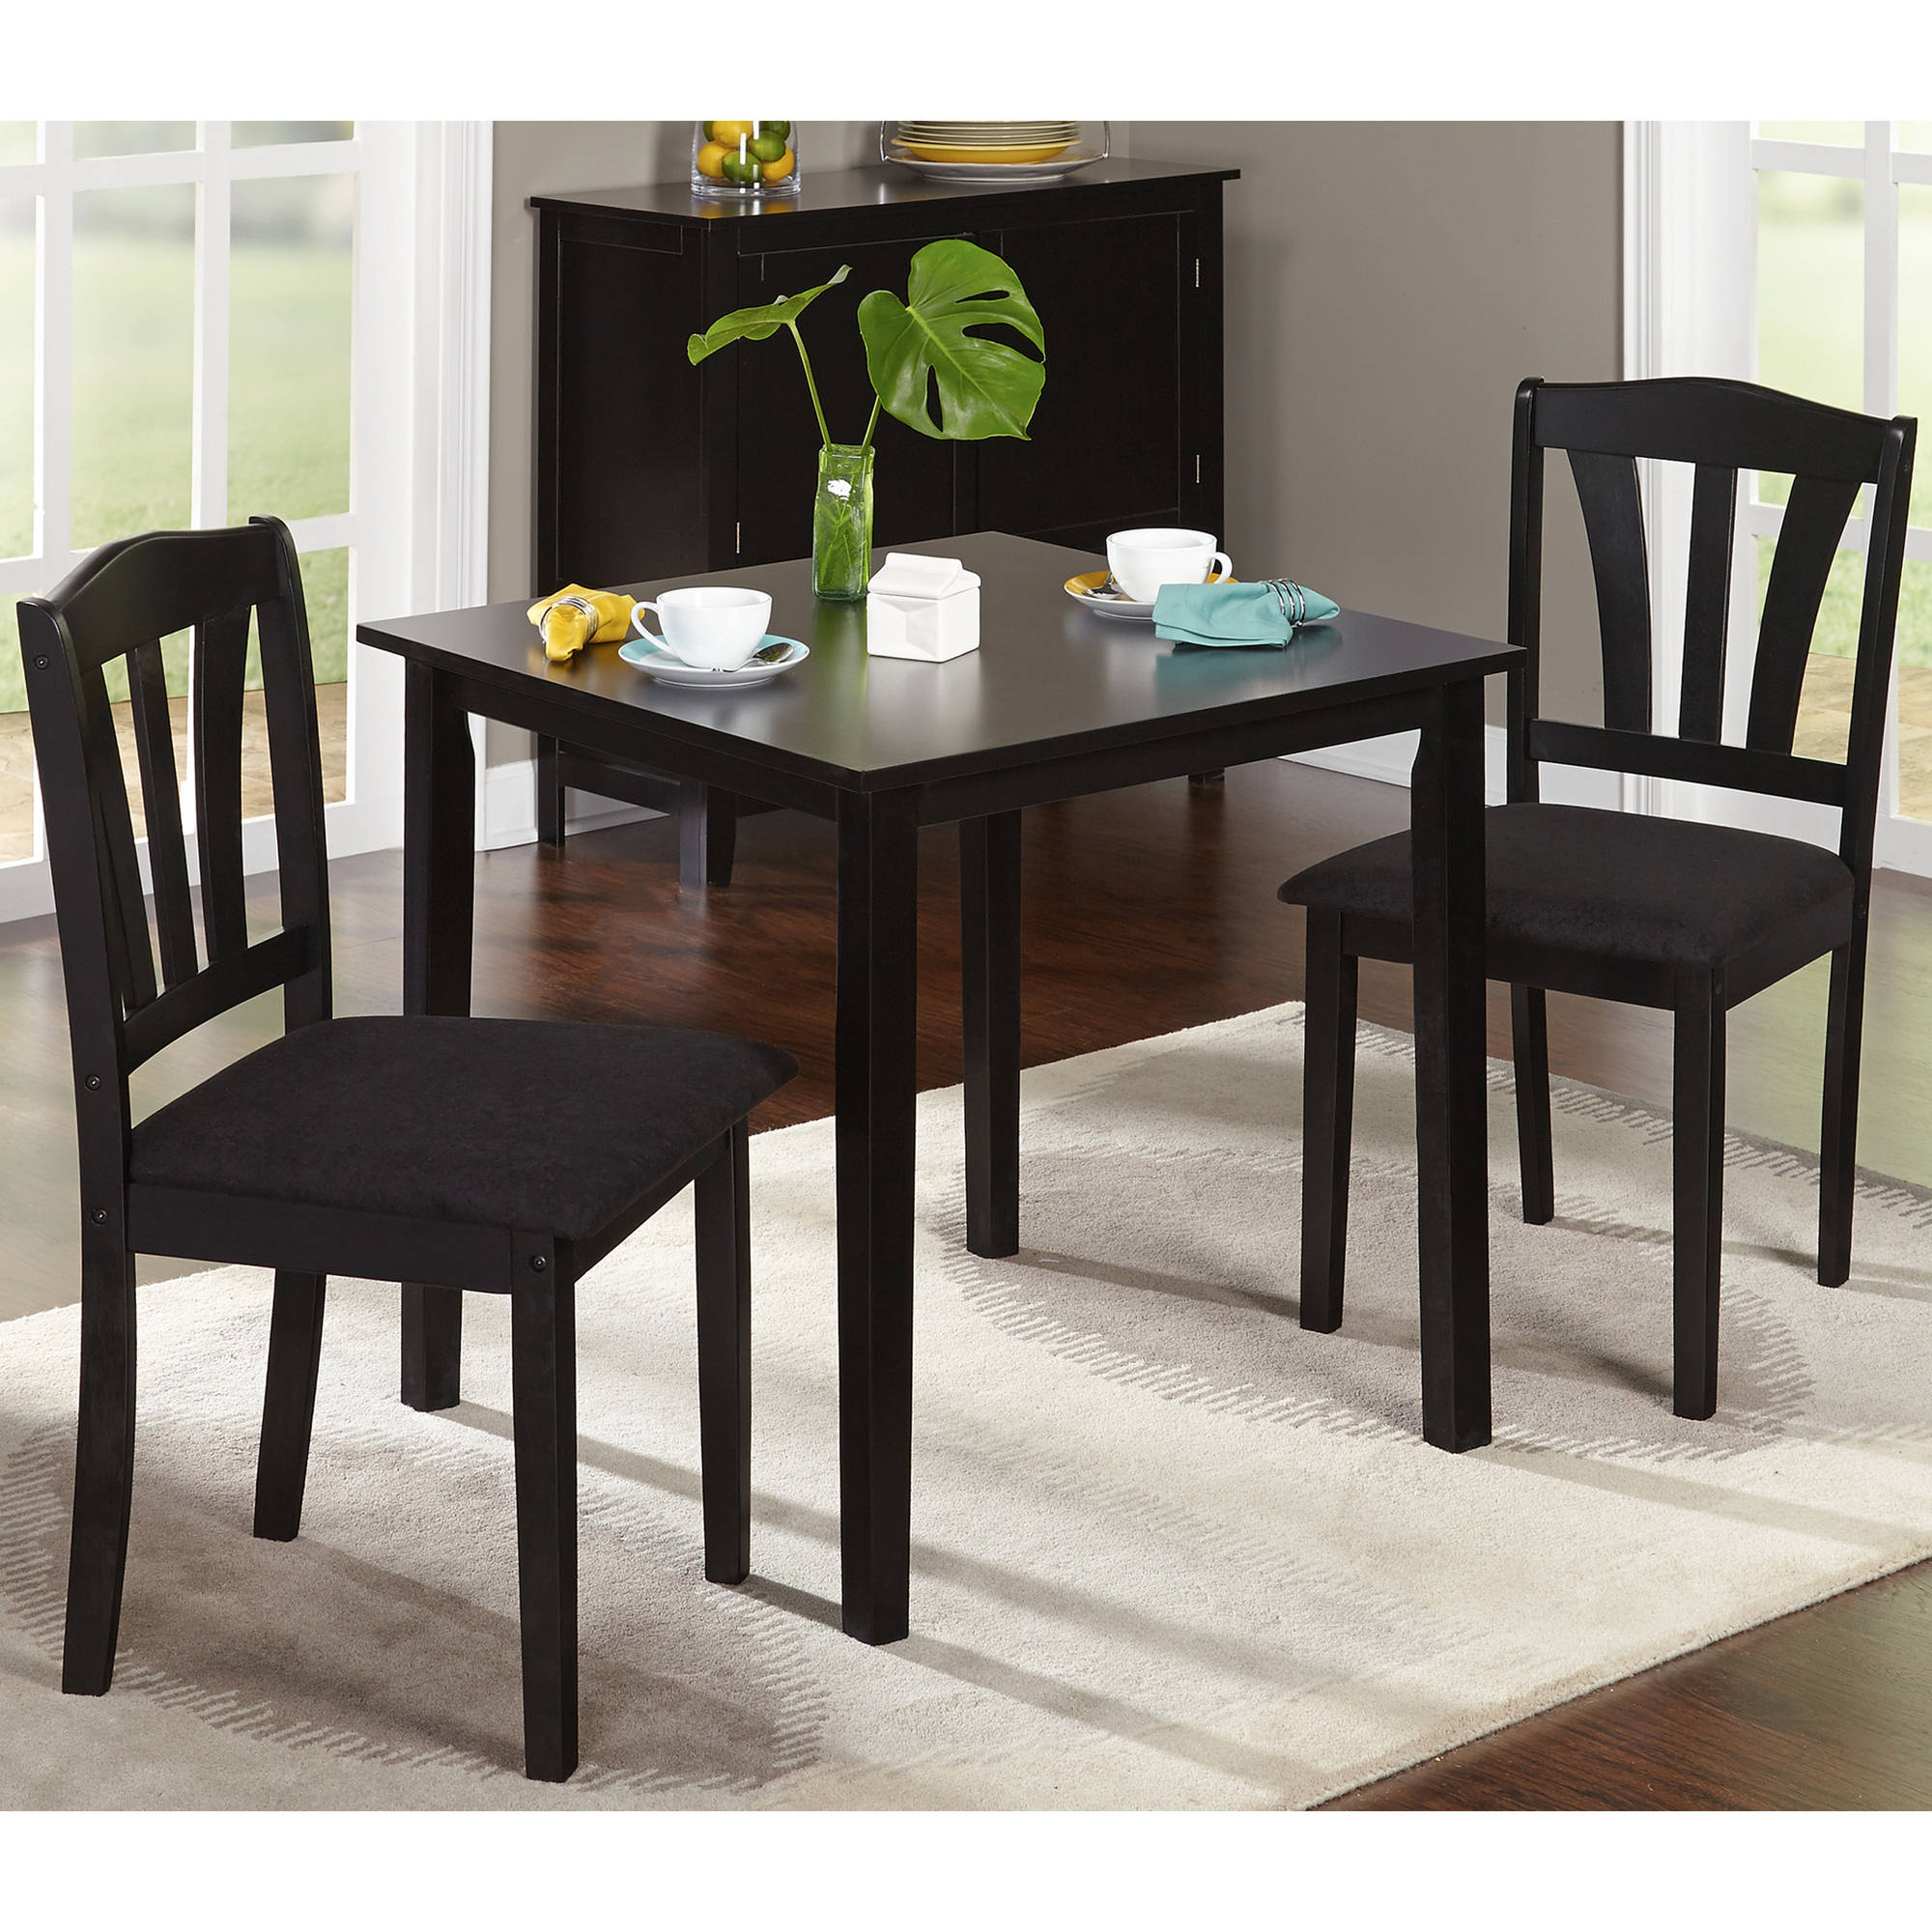 3 Pieces Dining Tables And Chair Set Within Most Current Details About 3 Piece Dining Set Table 2 Chairs Kitchen Room Wood Furniture  Dinette Modern New (Gallery 1 of 30)